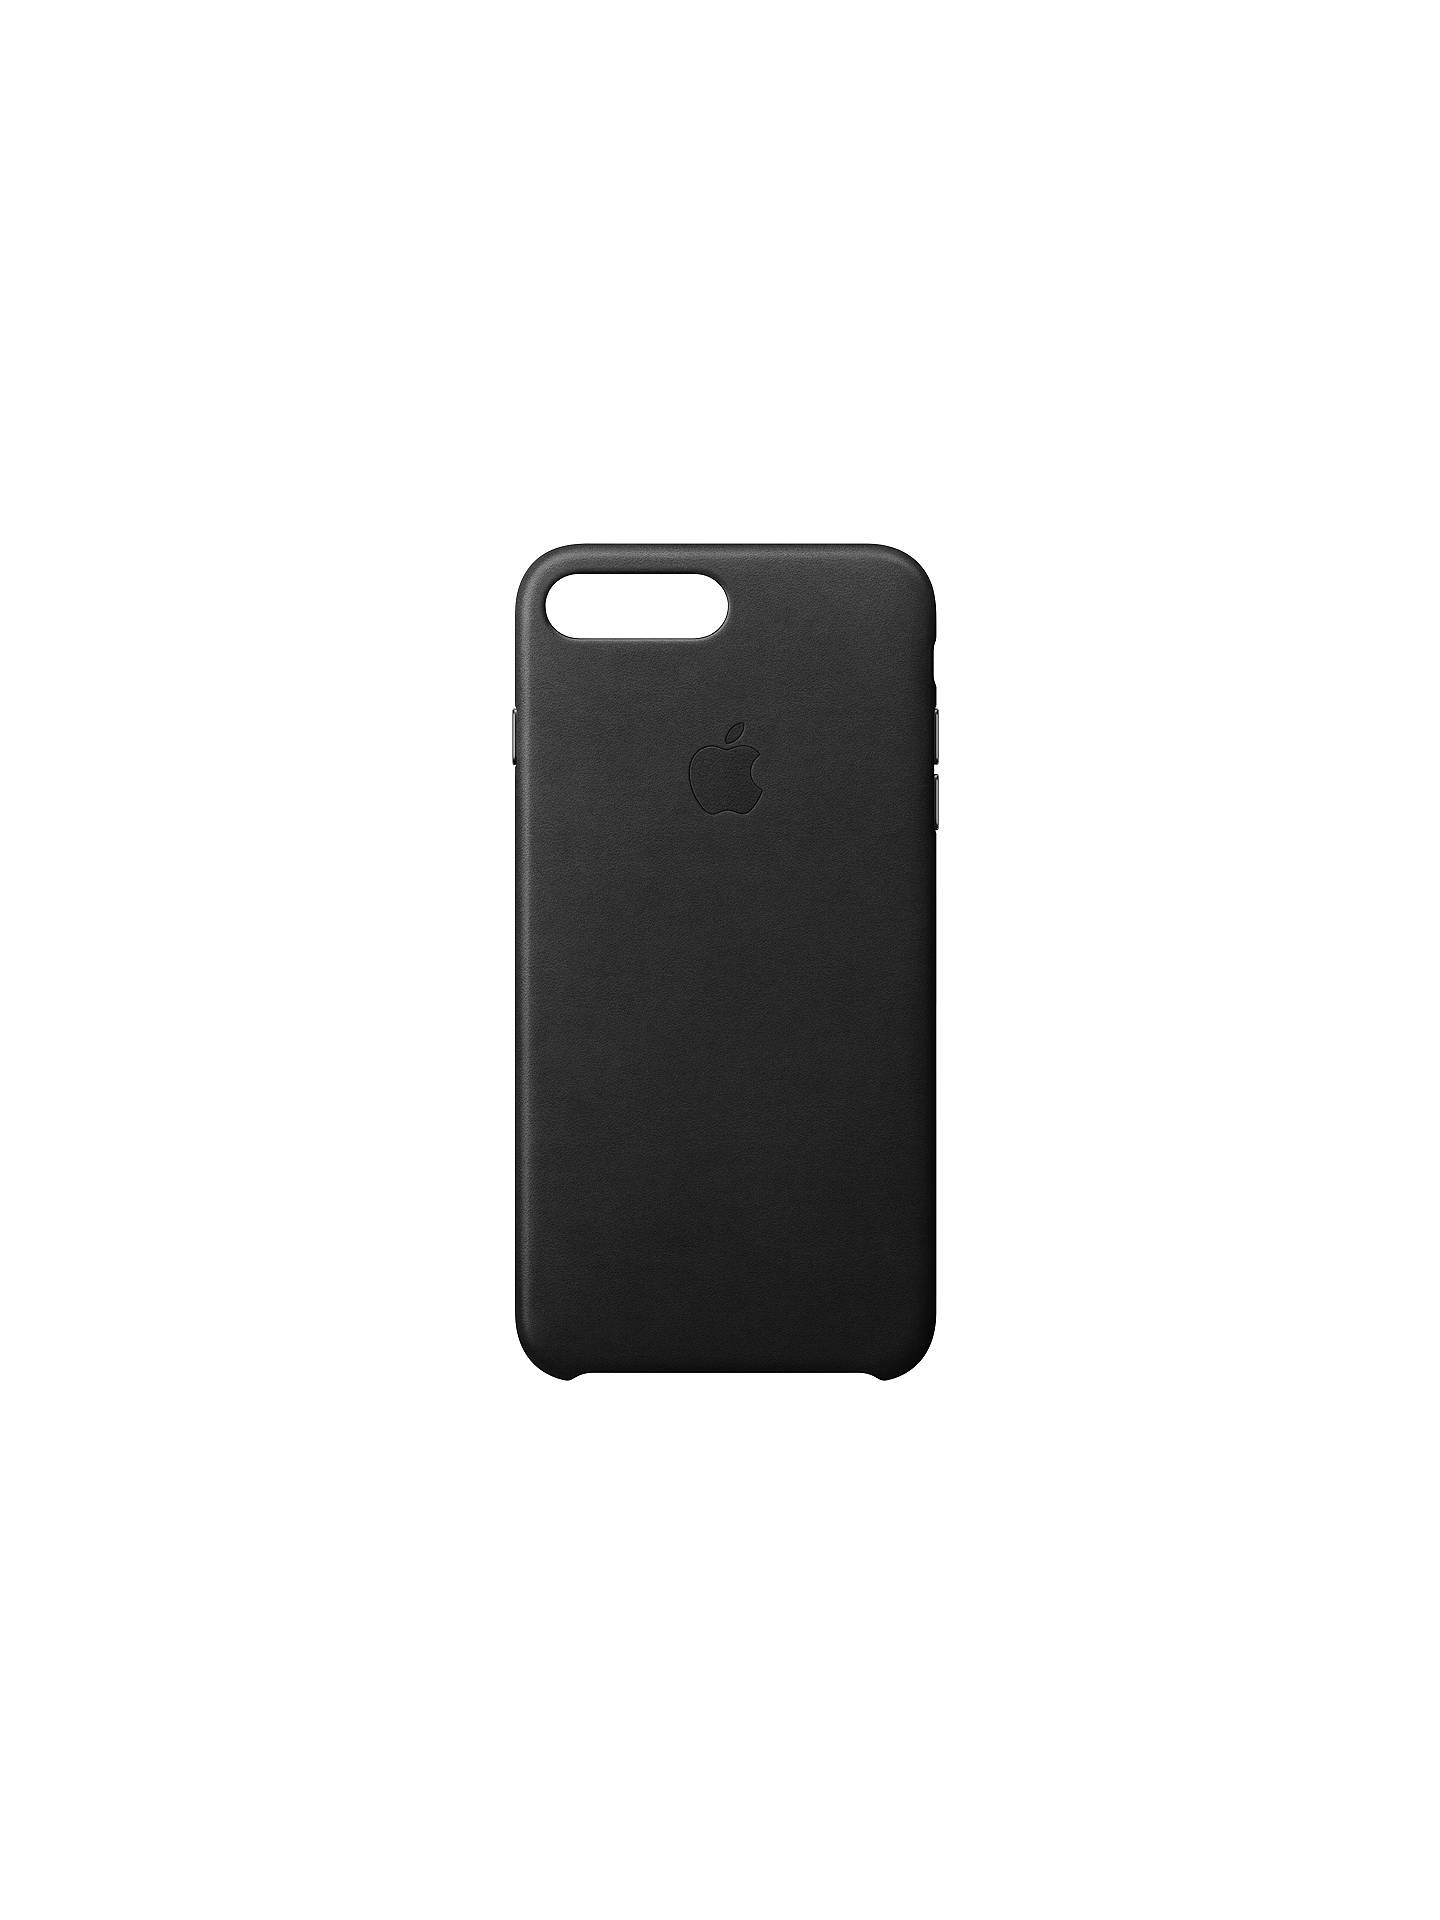 BuyApple Leather Case for iPhone 8 Plus, Black Online at johnlewis.com